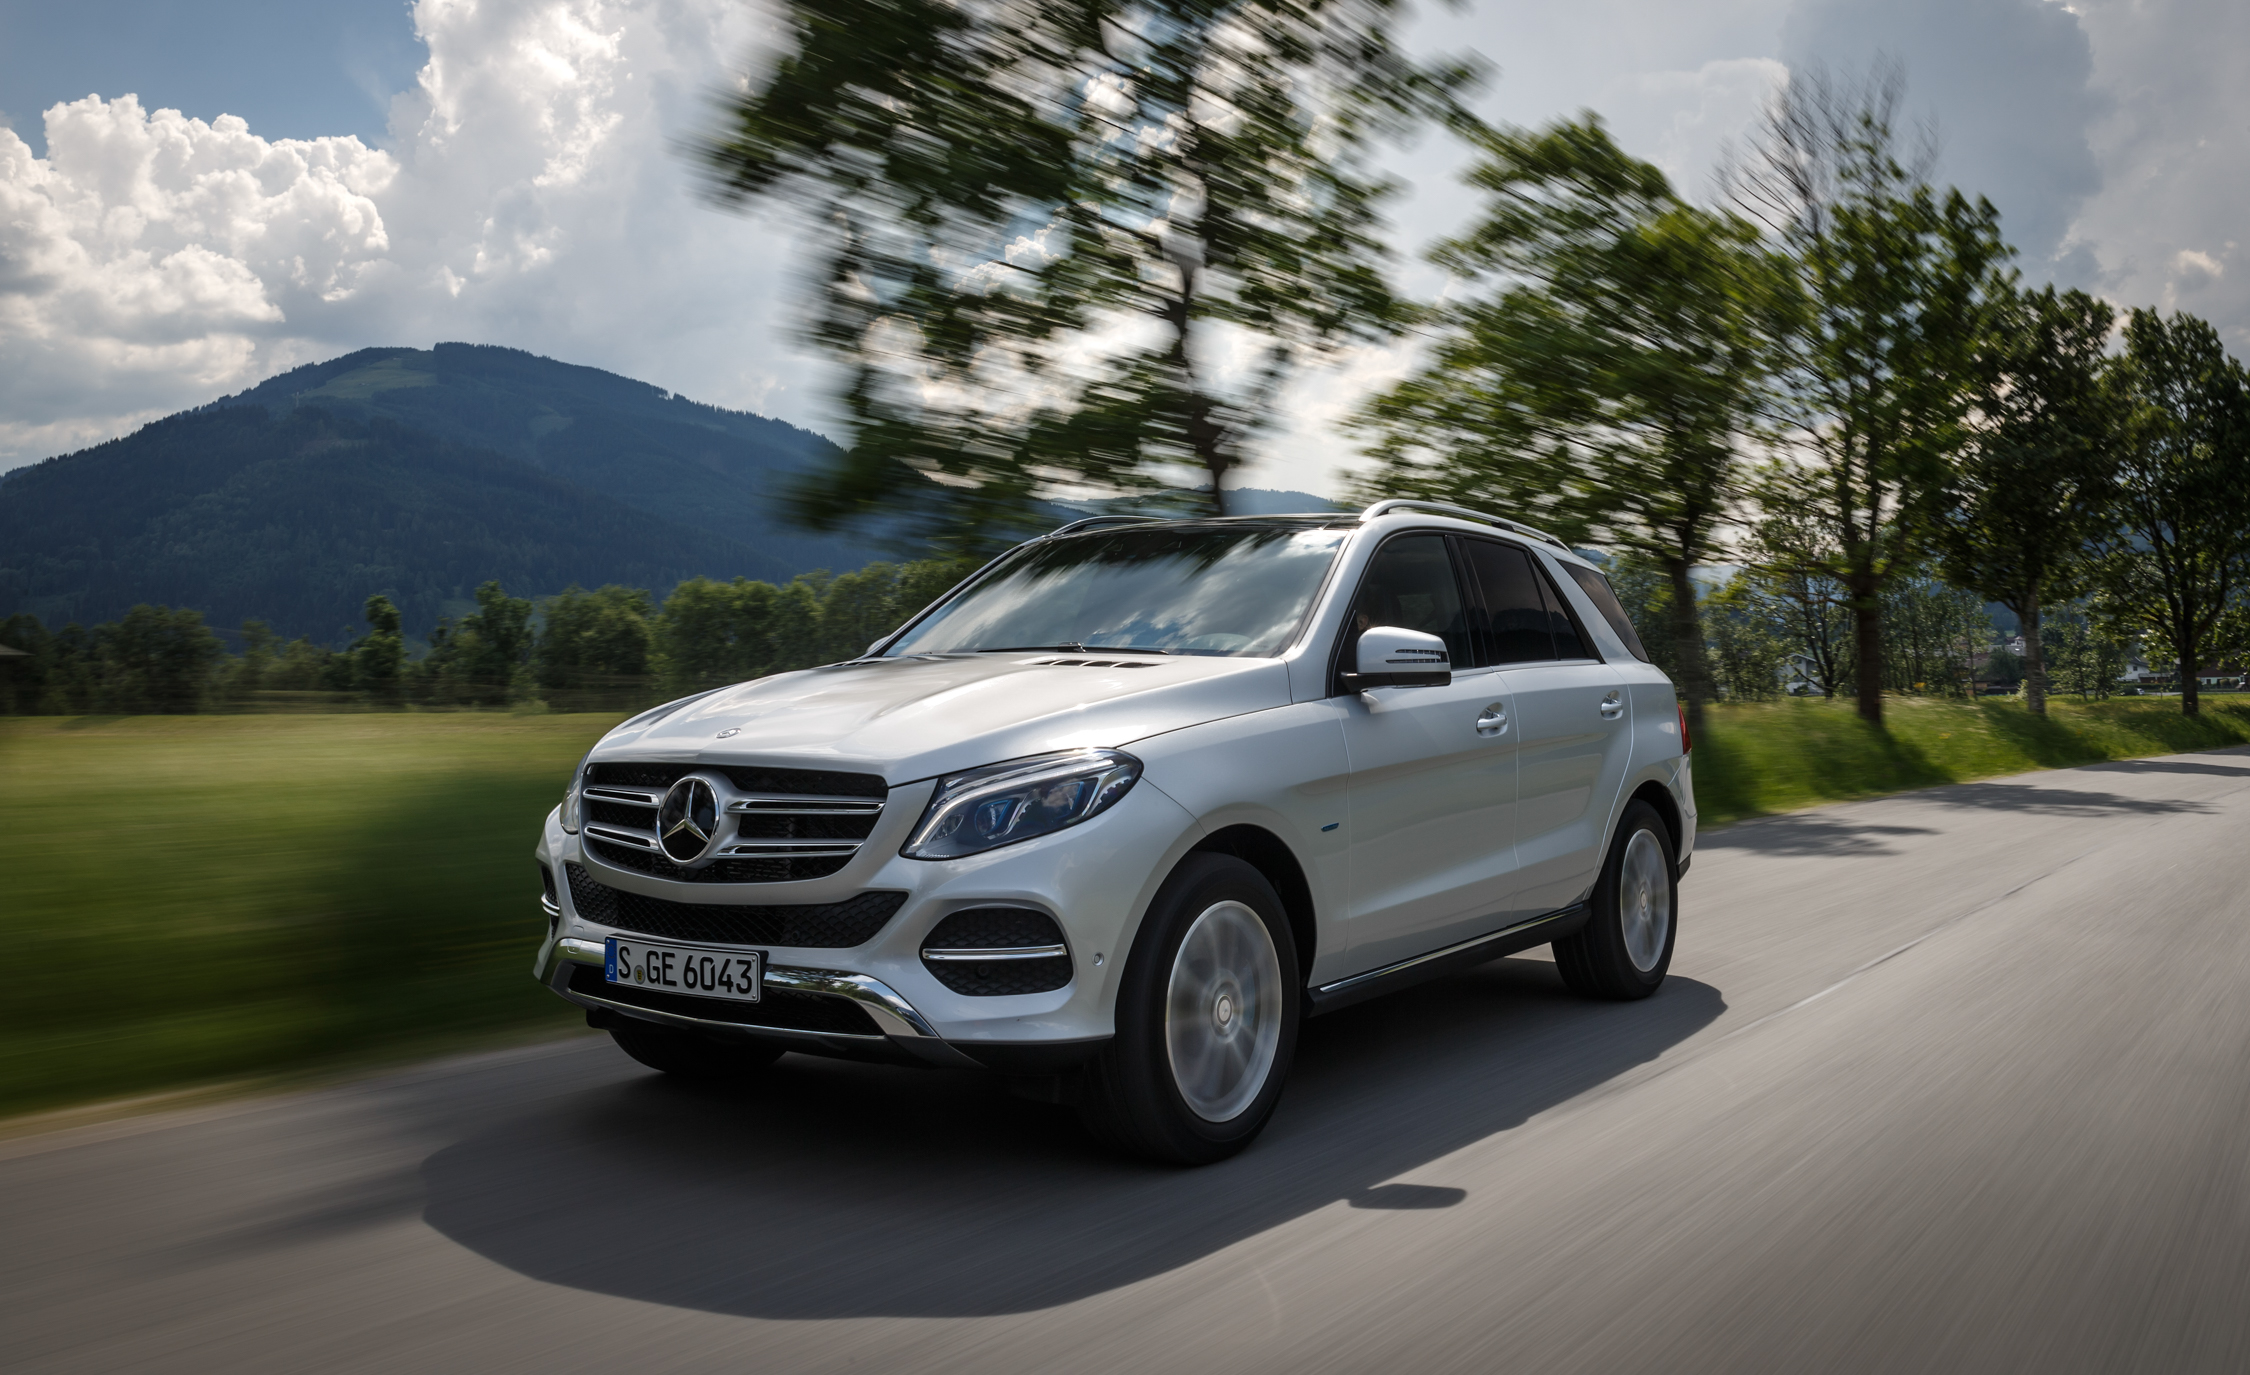 2016 Mercedes Benz GLE500e 4MATIC (View 39 of 43)